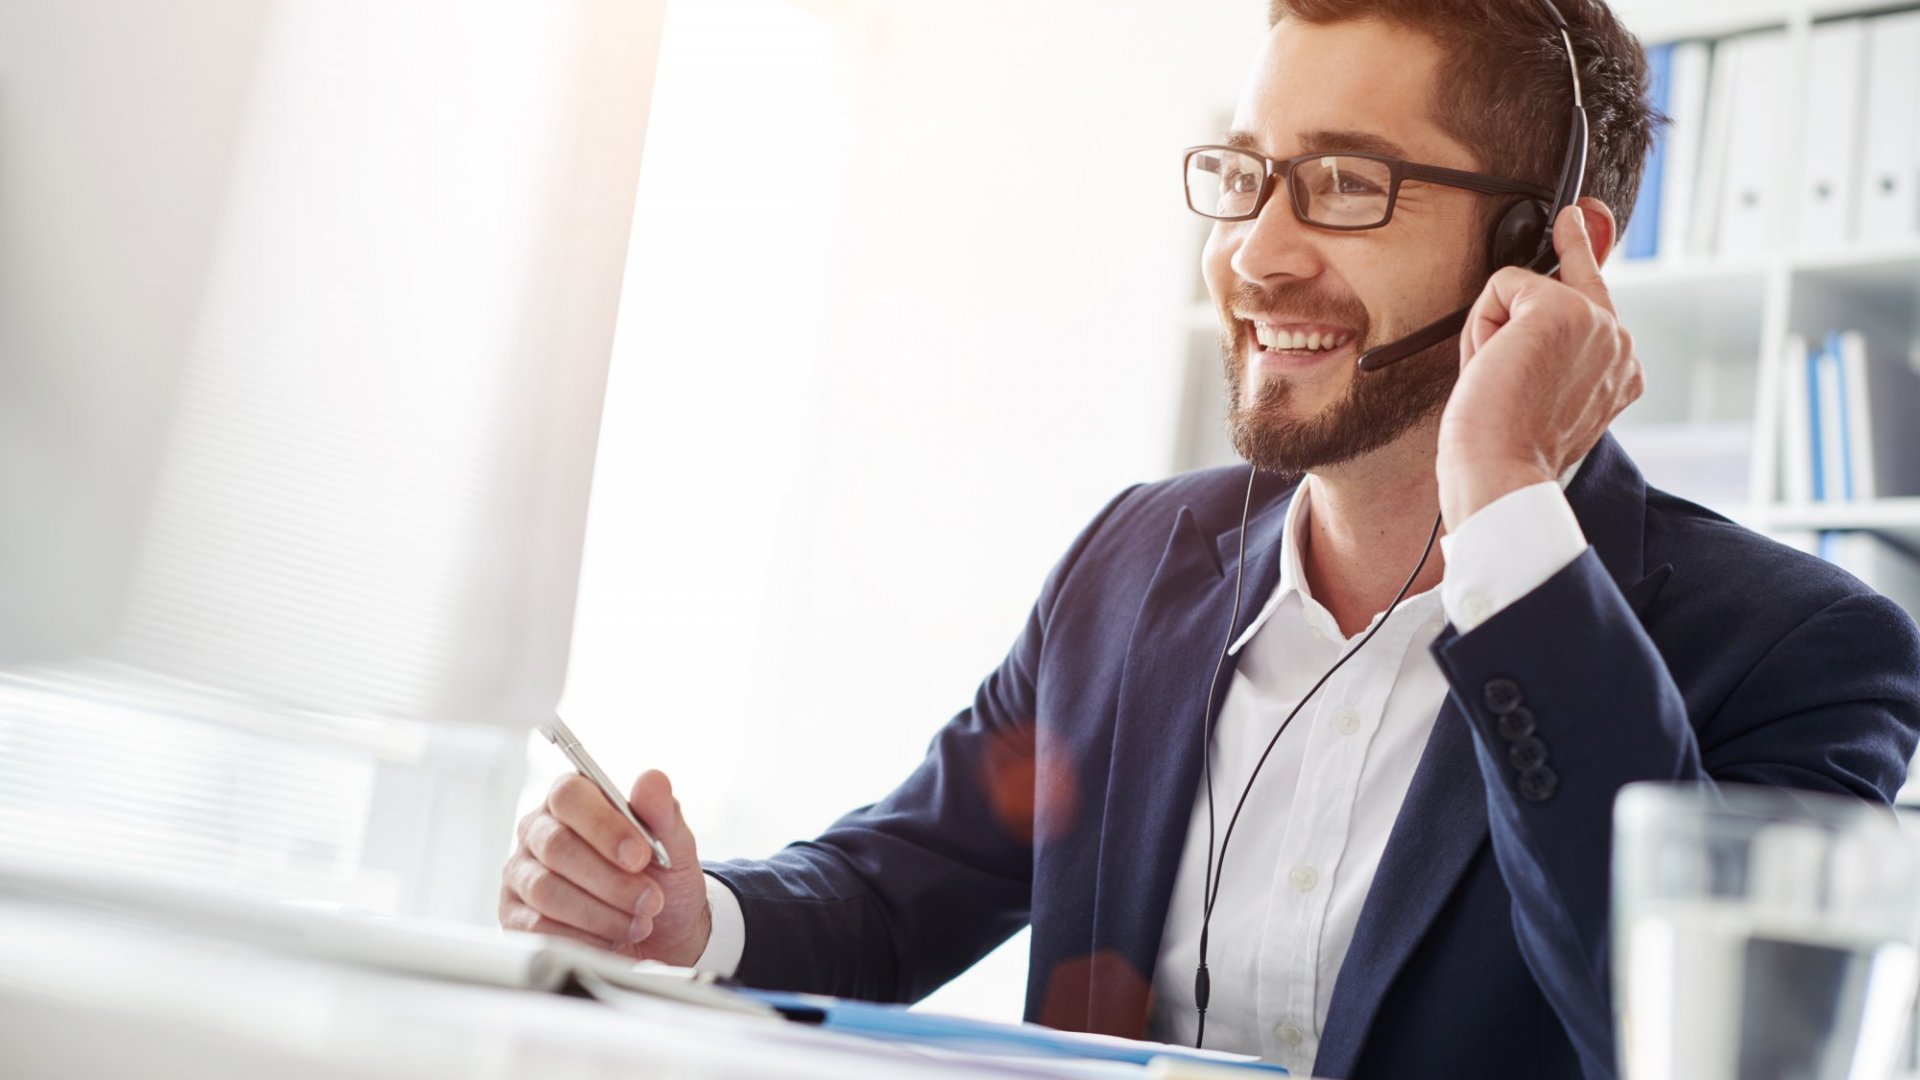 The Trick to More Effective Sales Calls